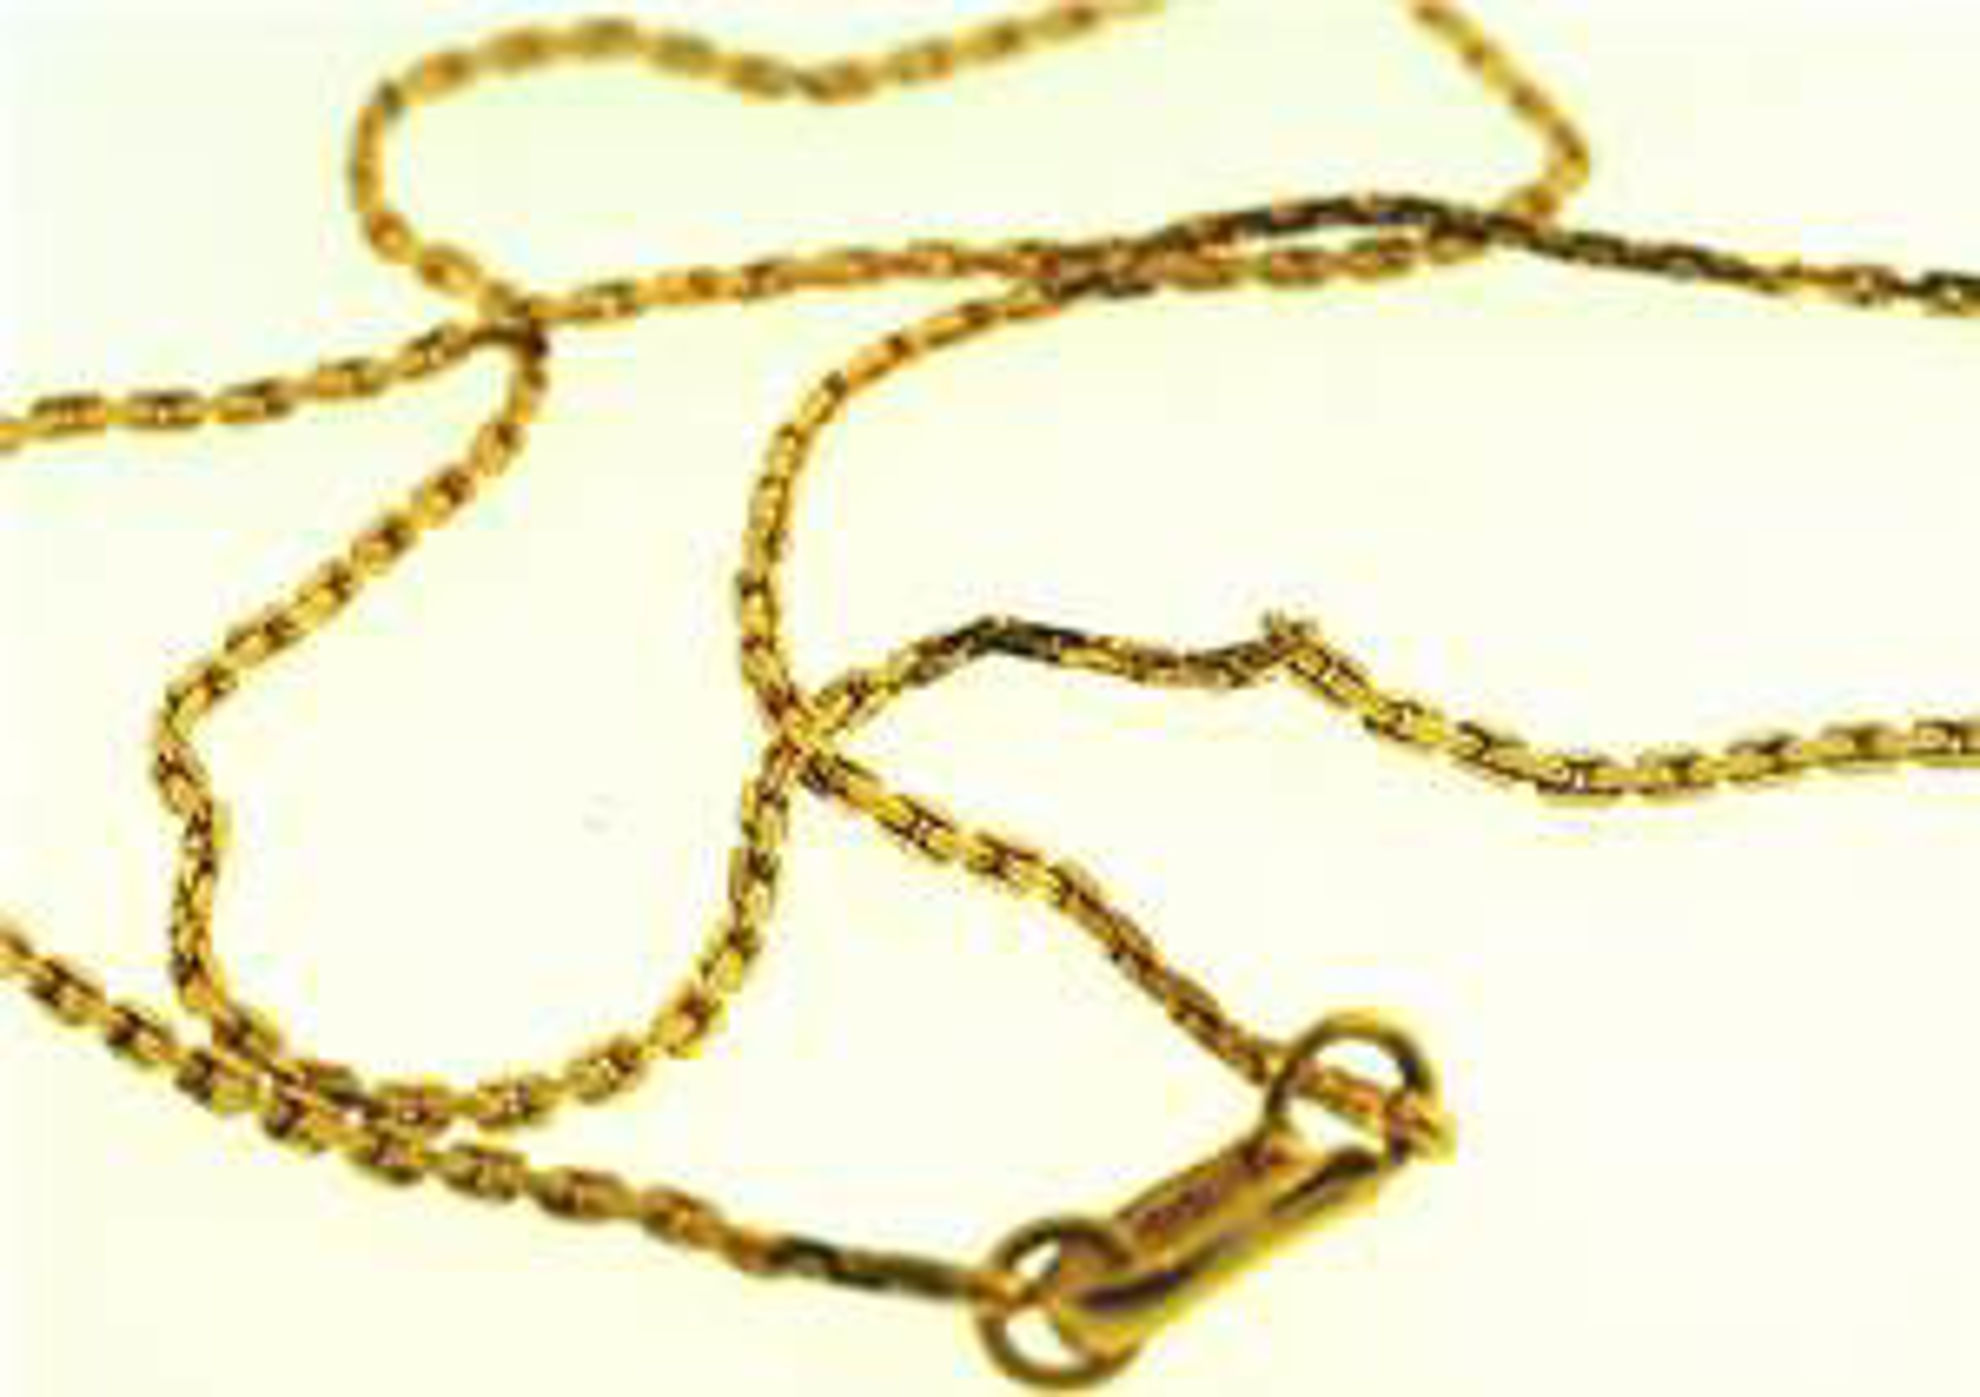 Picture of Chains 22kt-7.3 DWT, 11.4 Grams